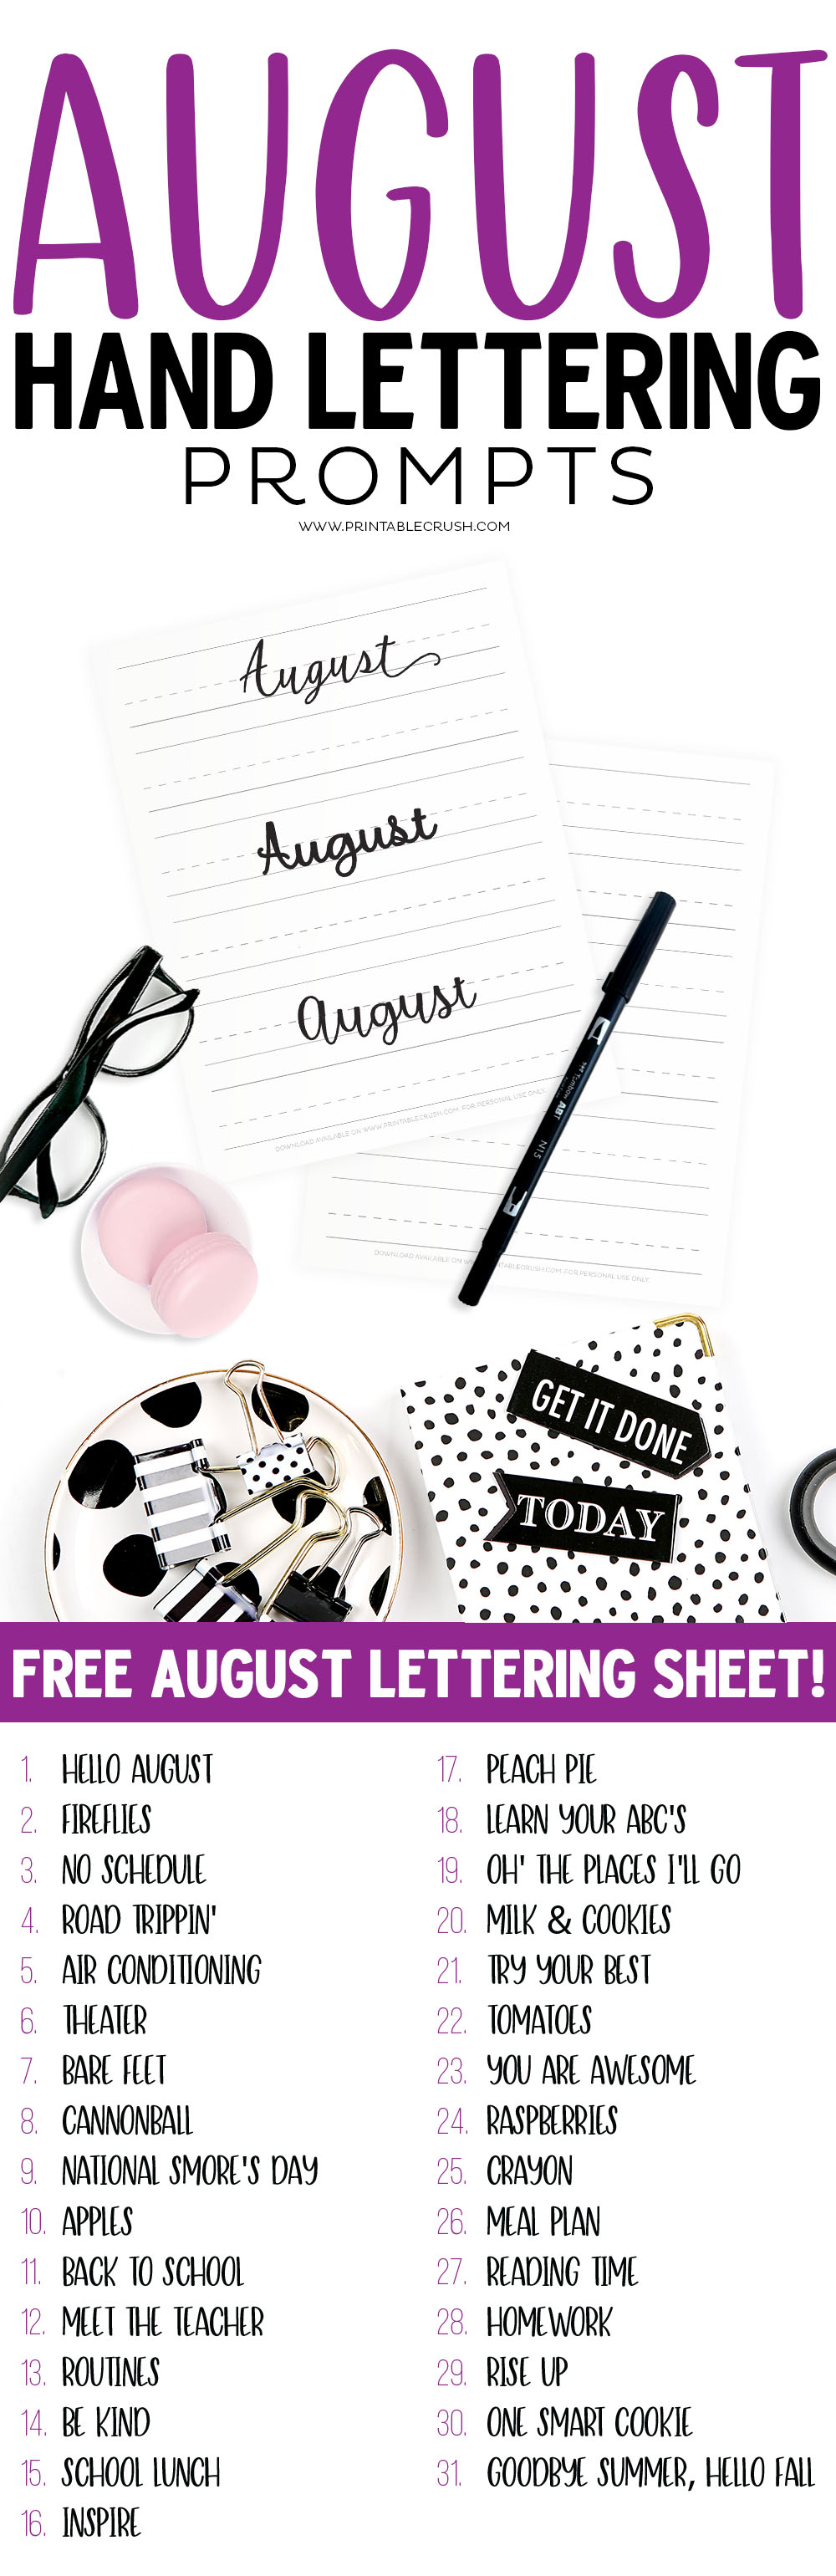 Free Practice Sheet with 31 August Hand Lettering Prompts